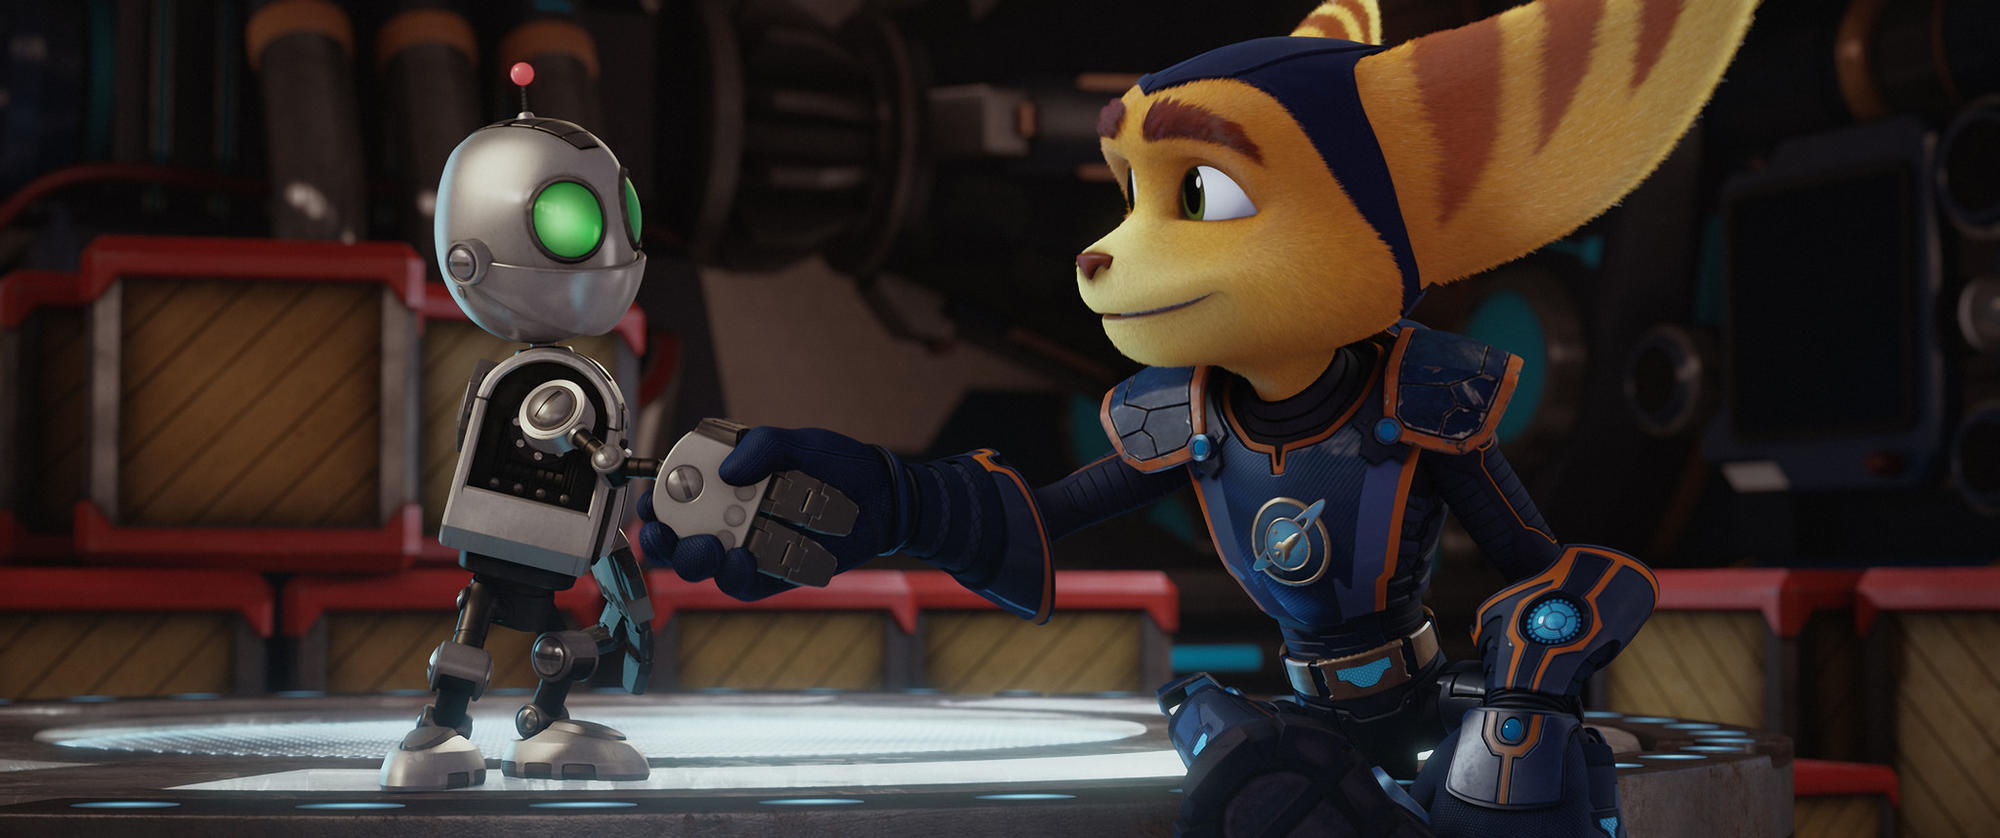 """David Kaye stars as the voice of Clank, left, and James Arnold Taylor stars as the voice of Ratchet in """"Ratchet and Clank."""""""